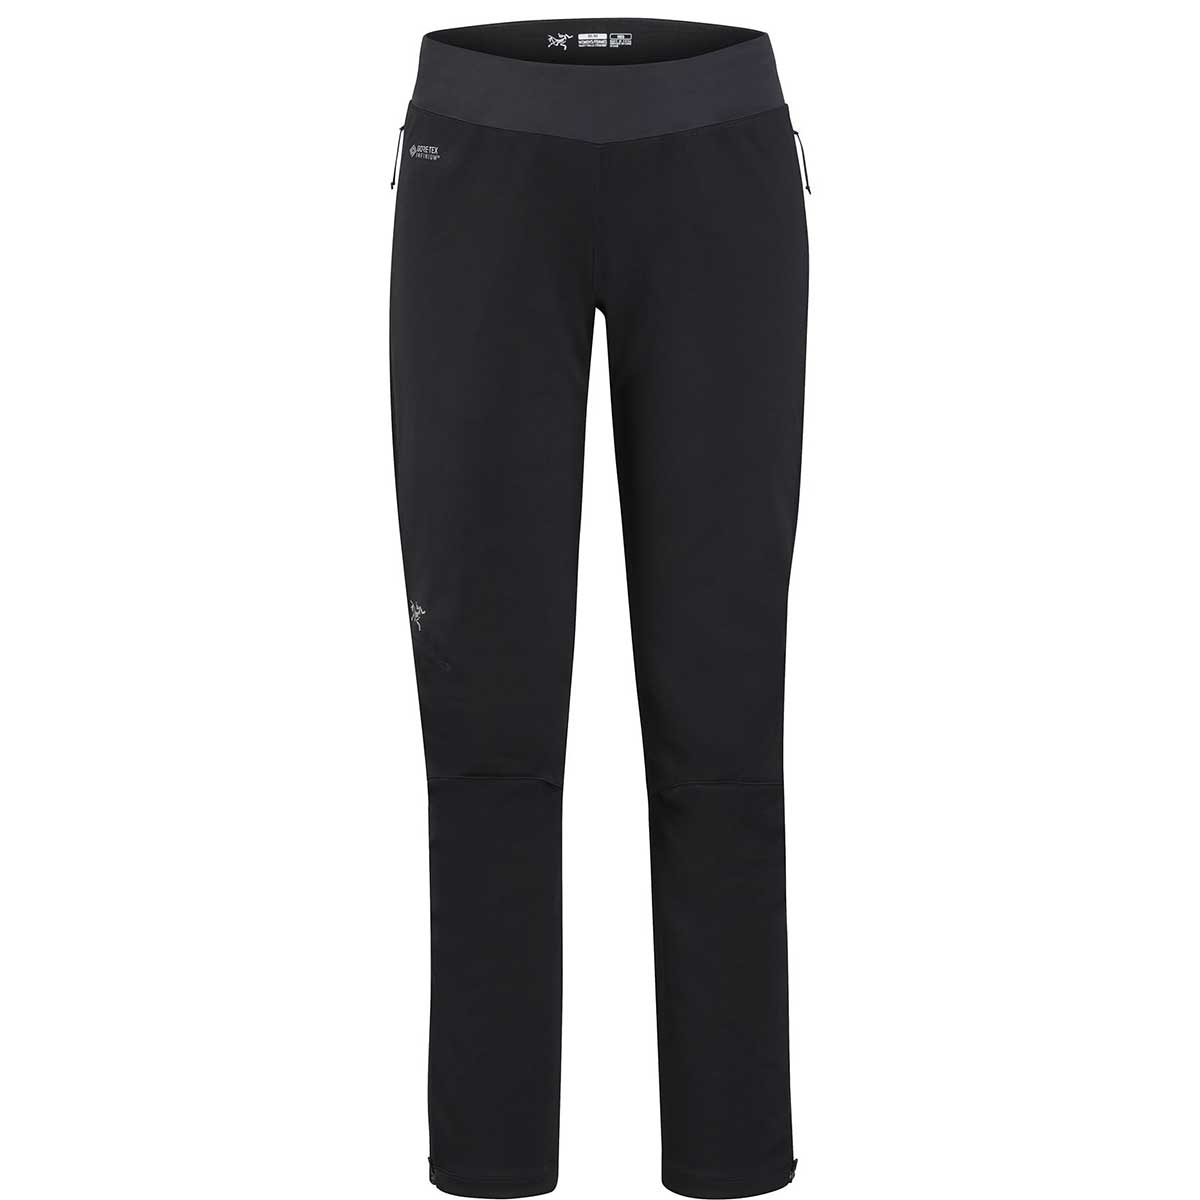 Arcteryx women's Trino Tight in Black and Black front view